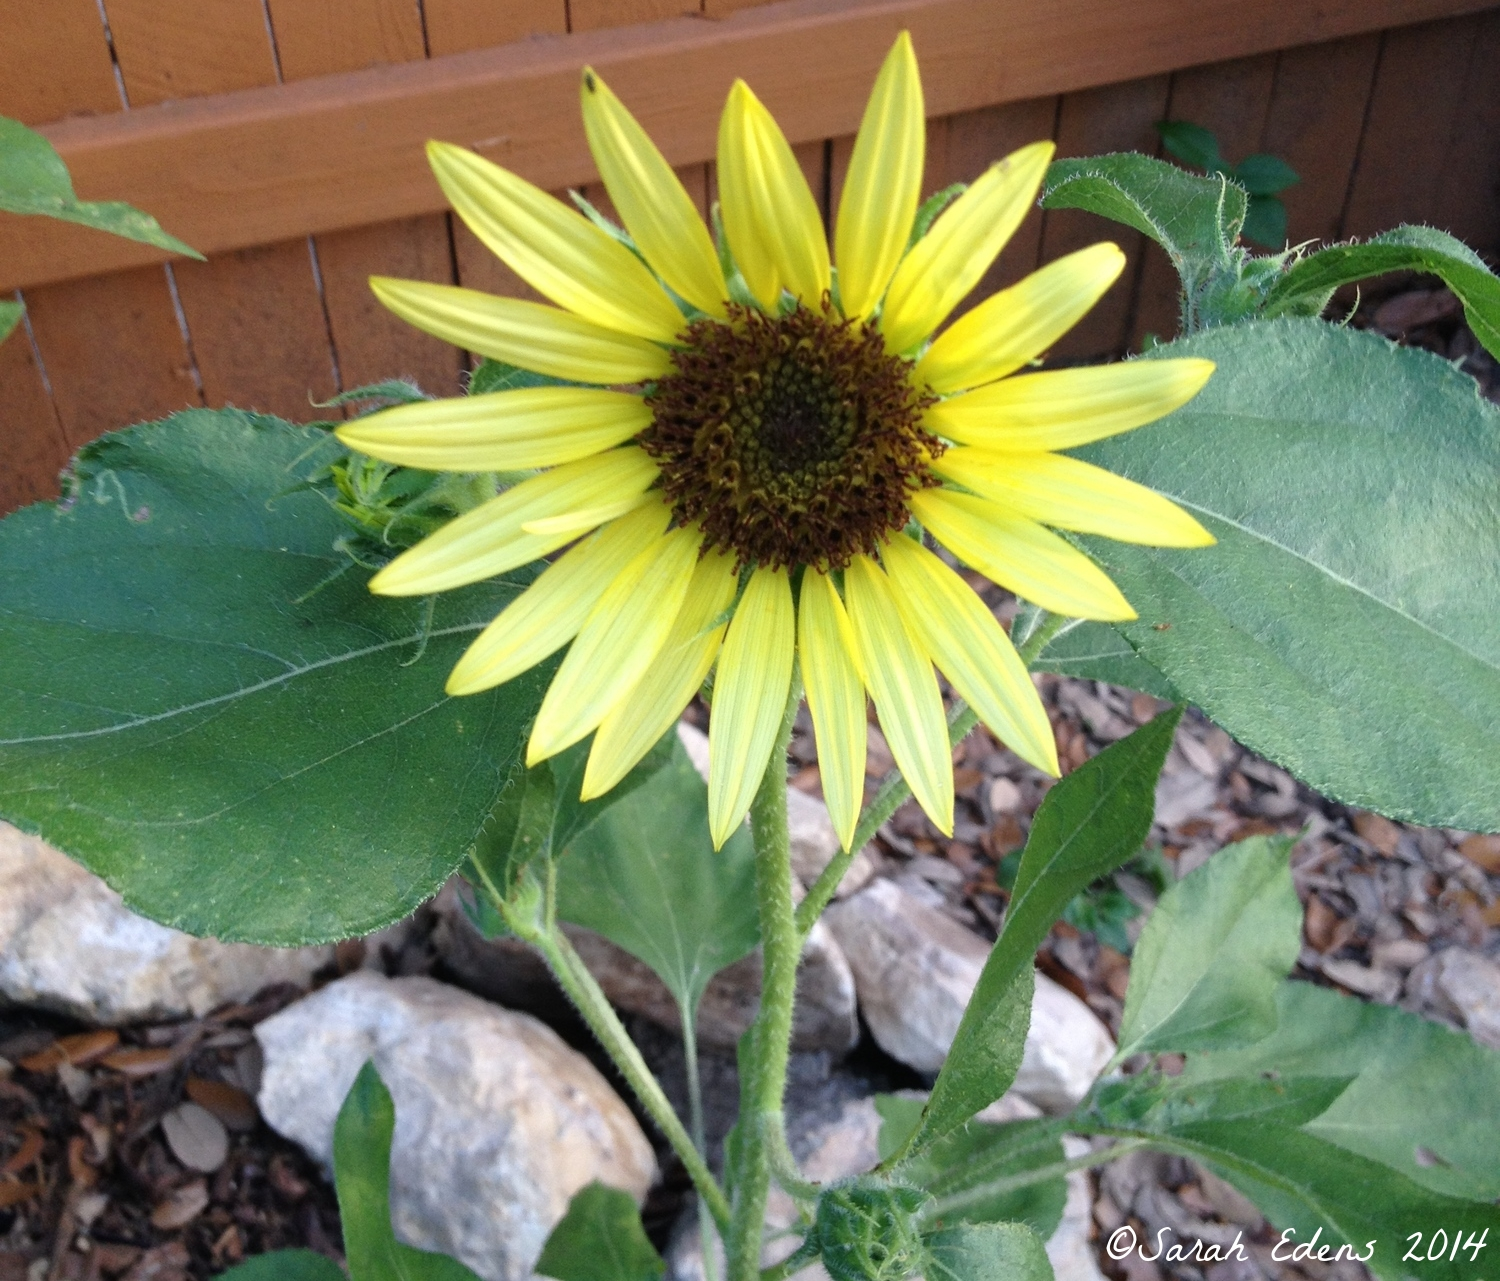 Early July: more gorgeous sunflowers